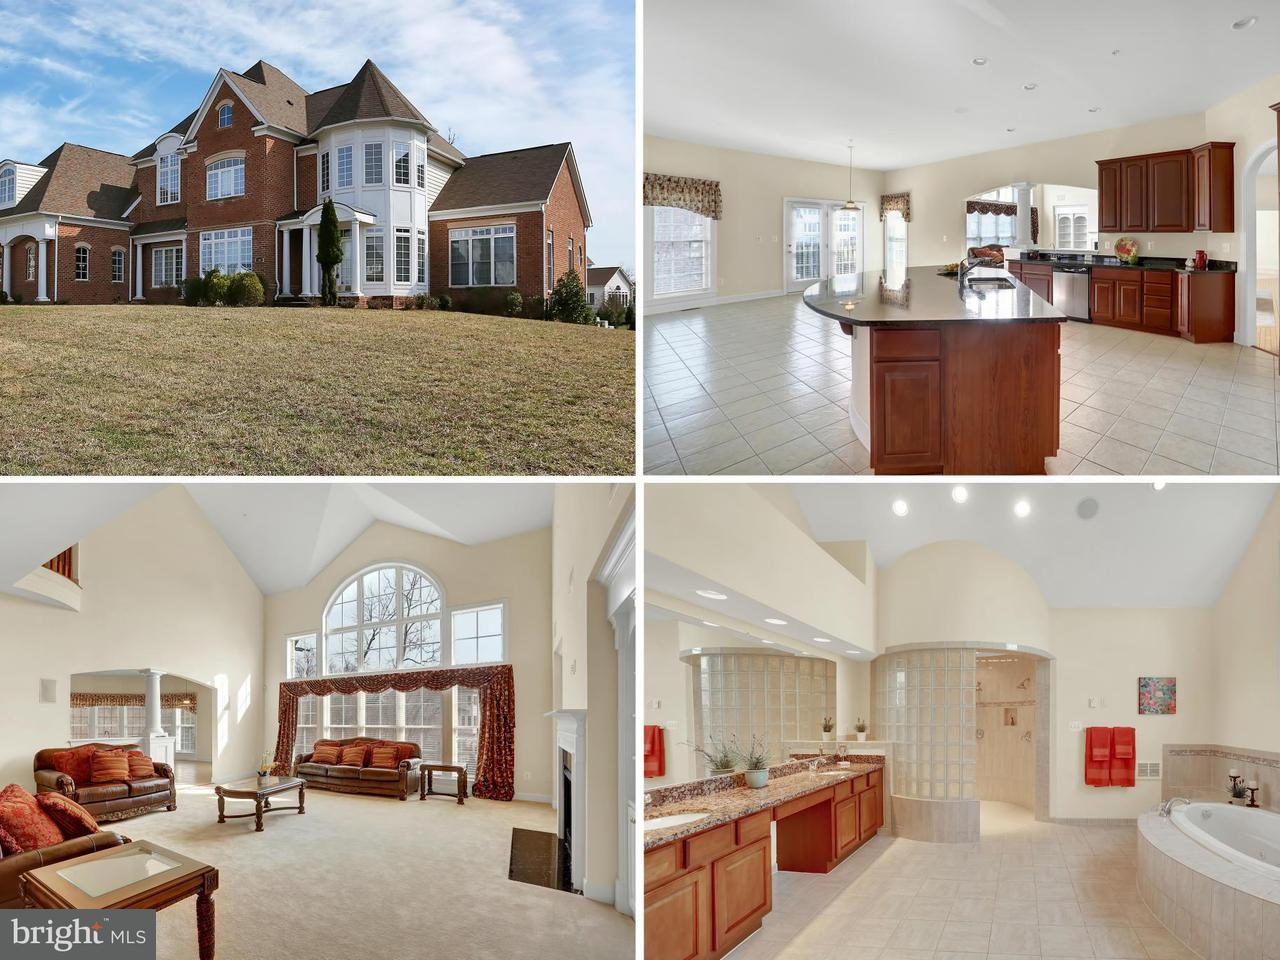 Casa Unifamiliar por un Venta en 12809 WOODMORE NORTH BLVD 12809 WOODMORE NORTH BLVD Bowie, Maryland 20720 Estados Unidos